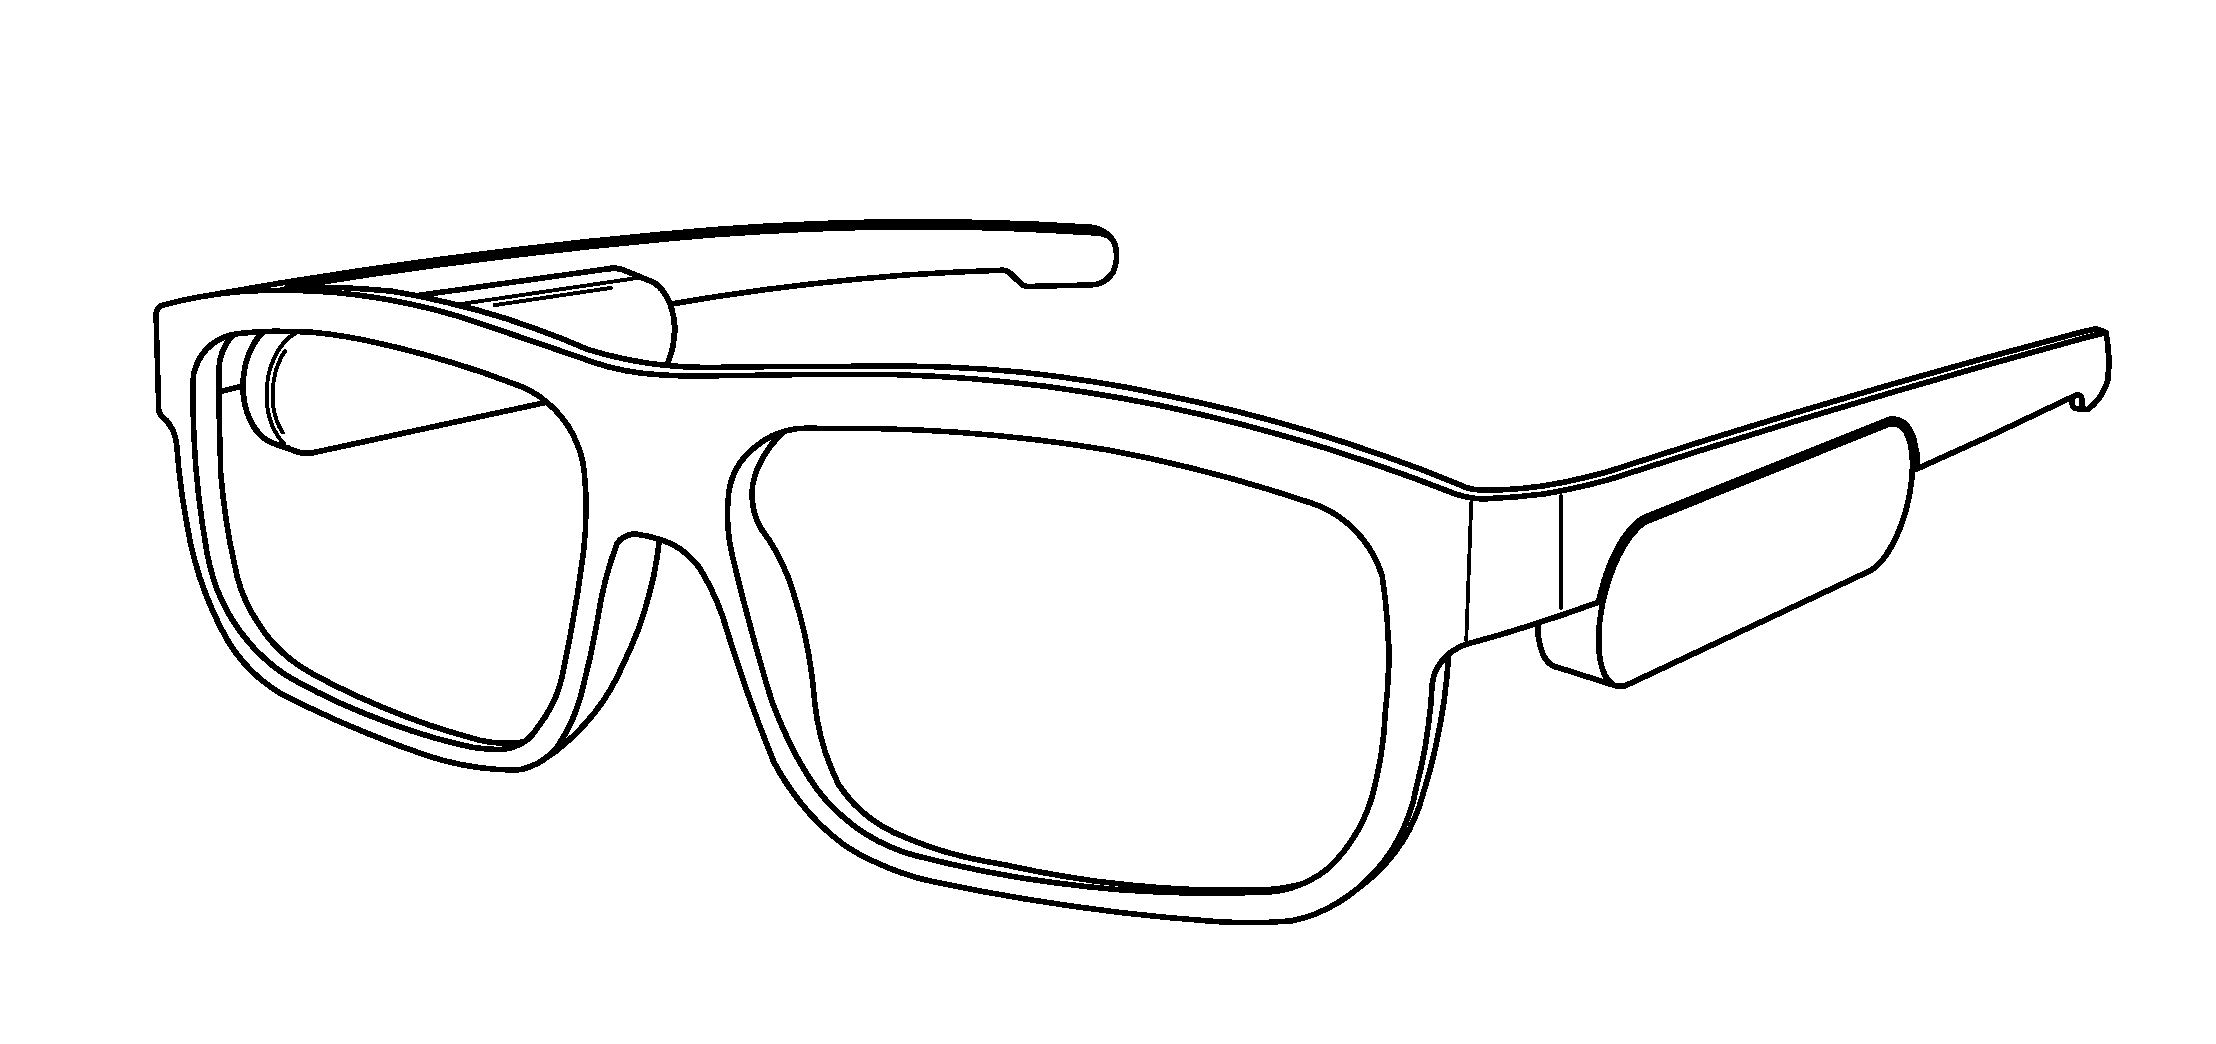 Patent USD669522 - 3D glasses - Google Patents